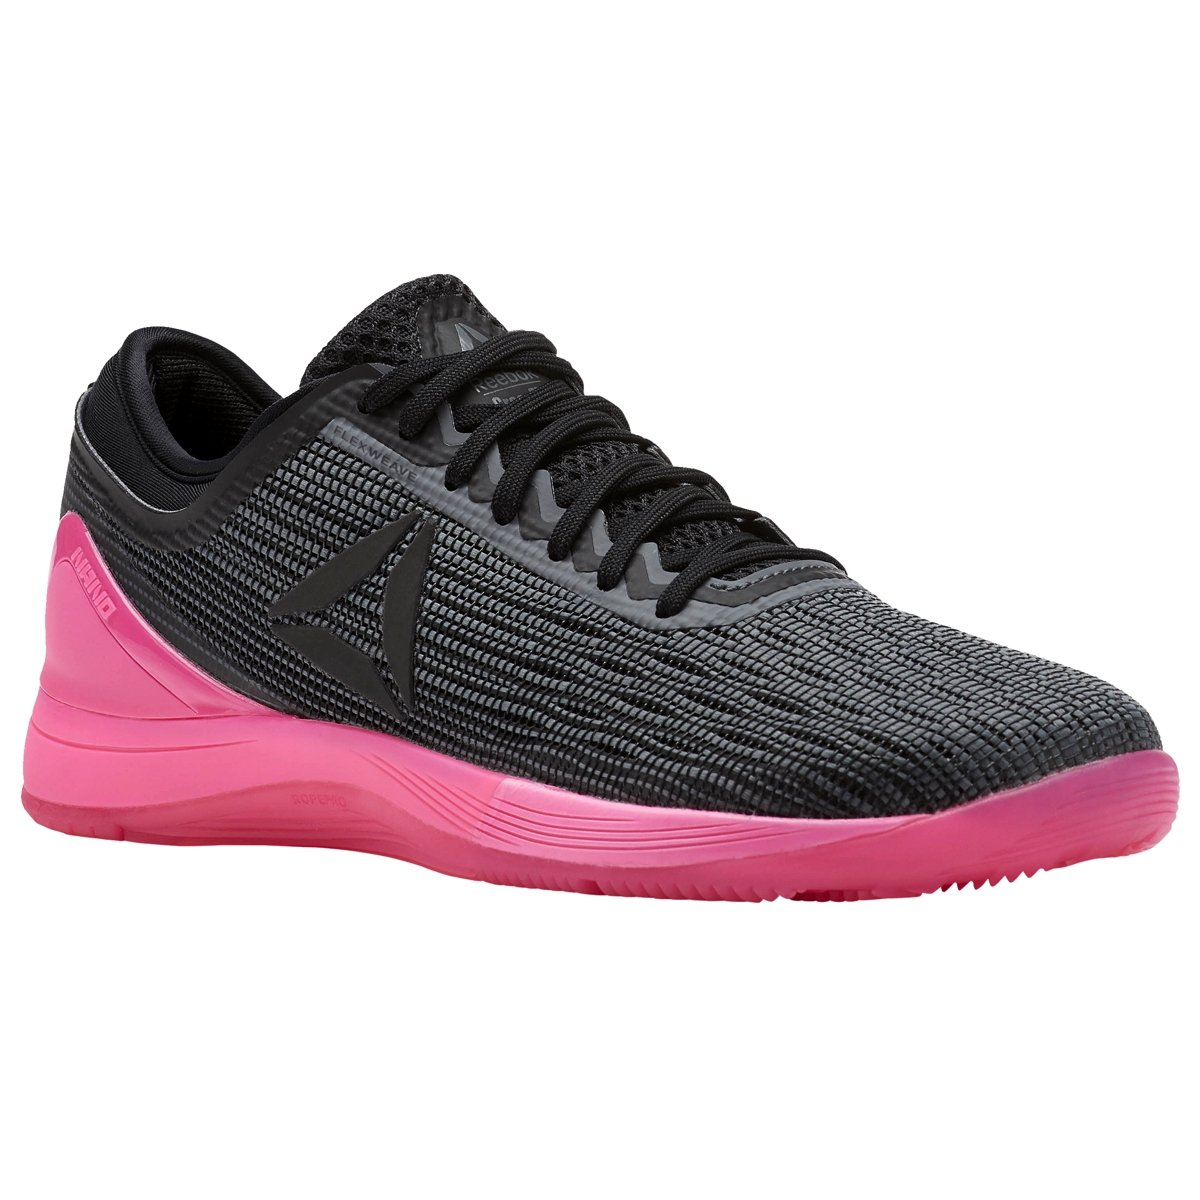 Reebok Women's Crossfit Nano 8.0 Flexweave Cross Trainer B077V9RDQ2 11 B(M) US|Alloy/Black/Solar Pink